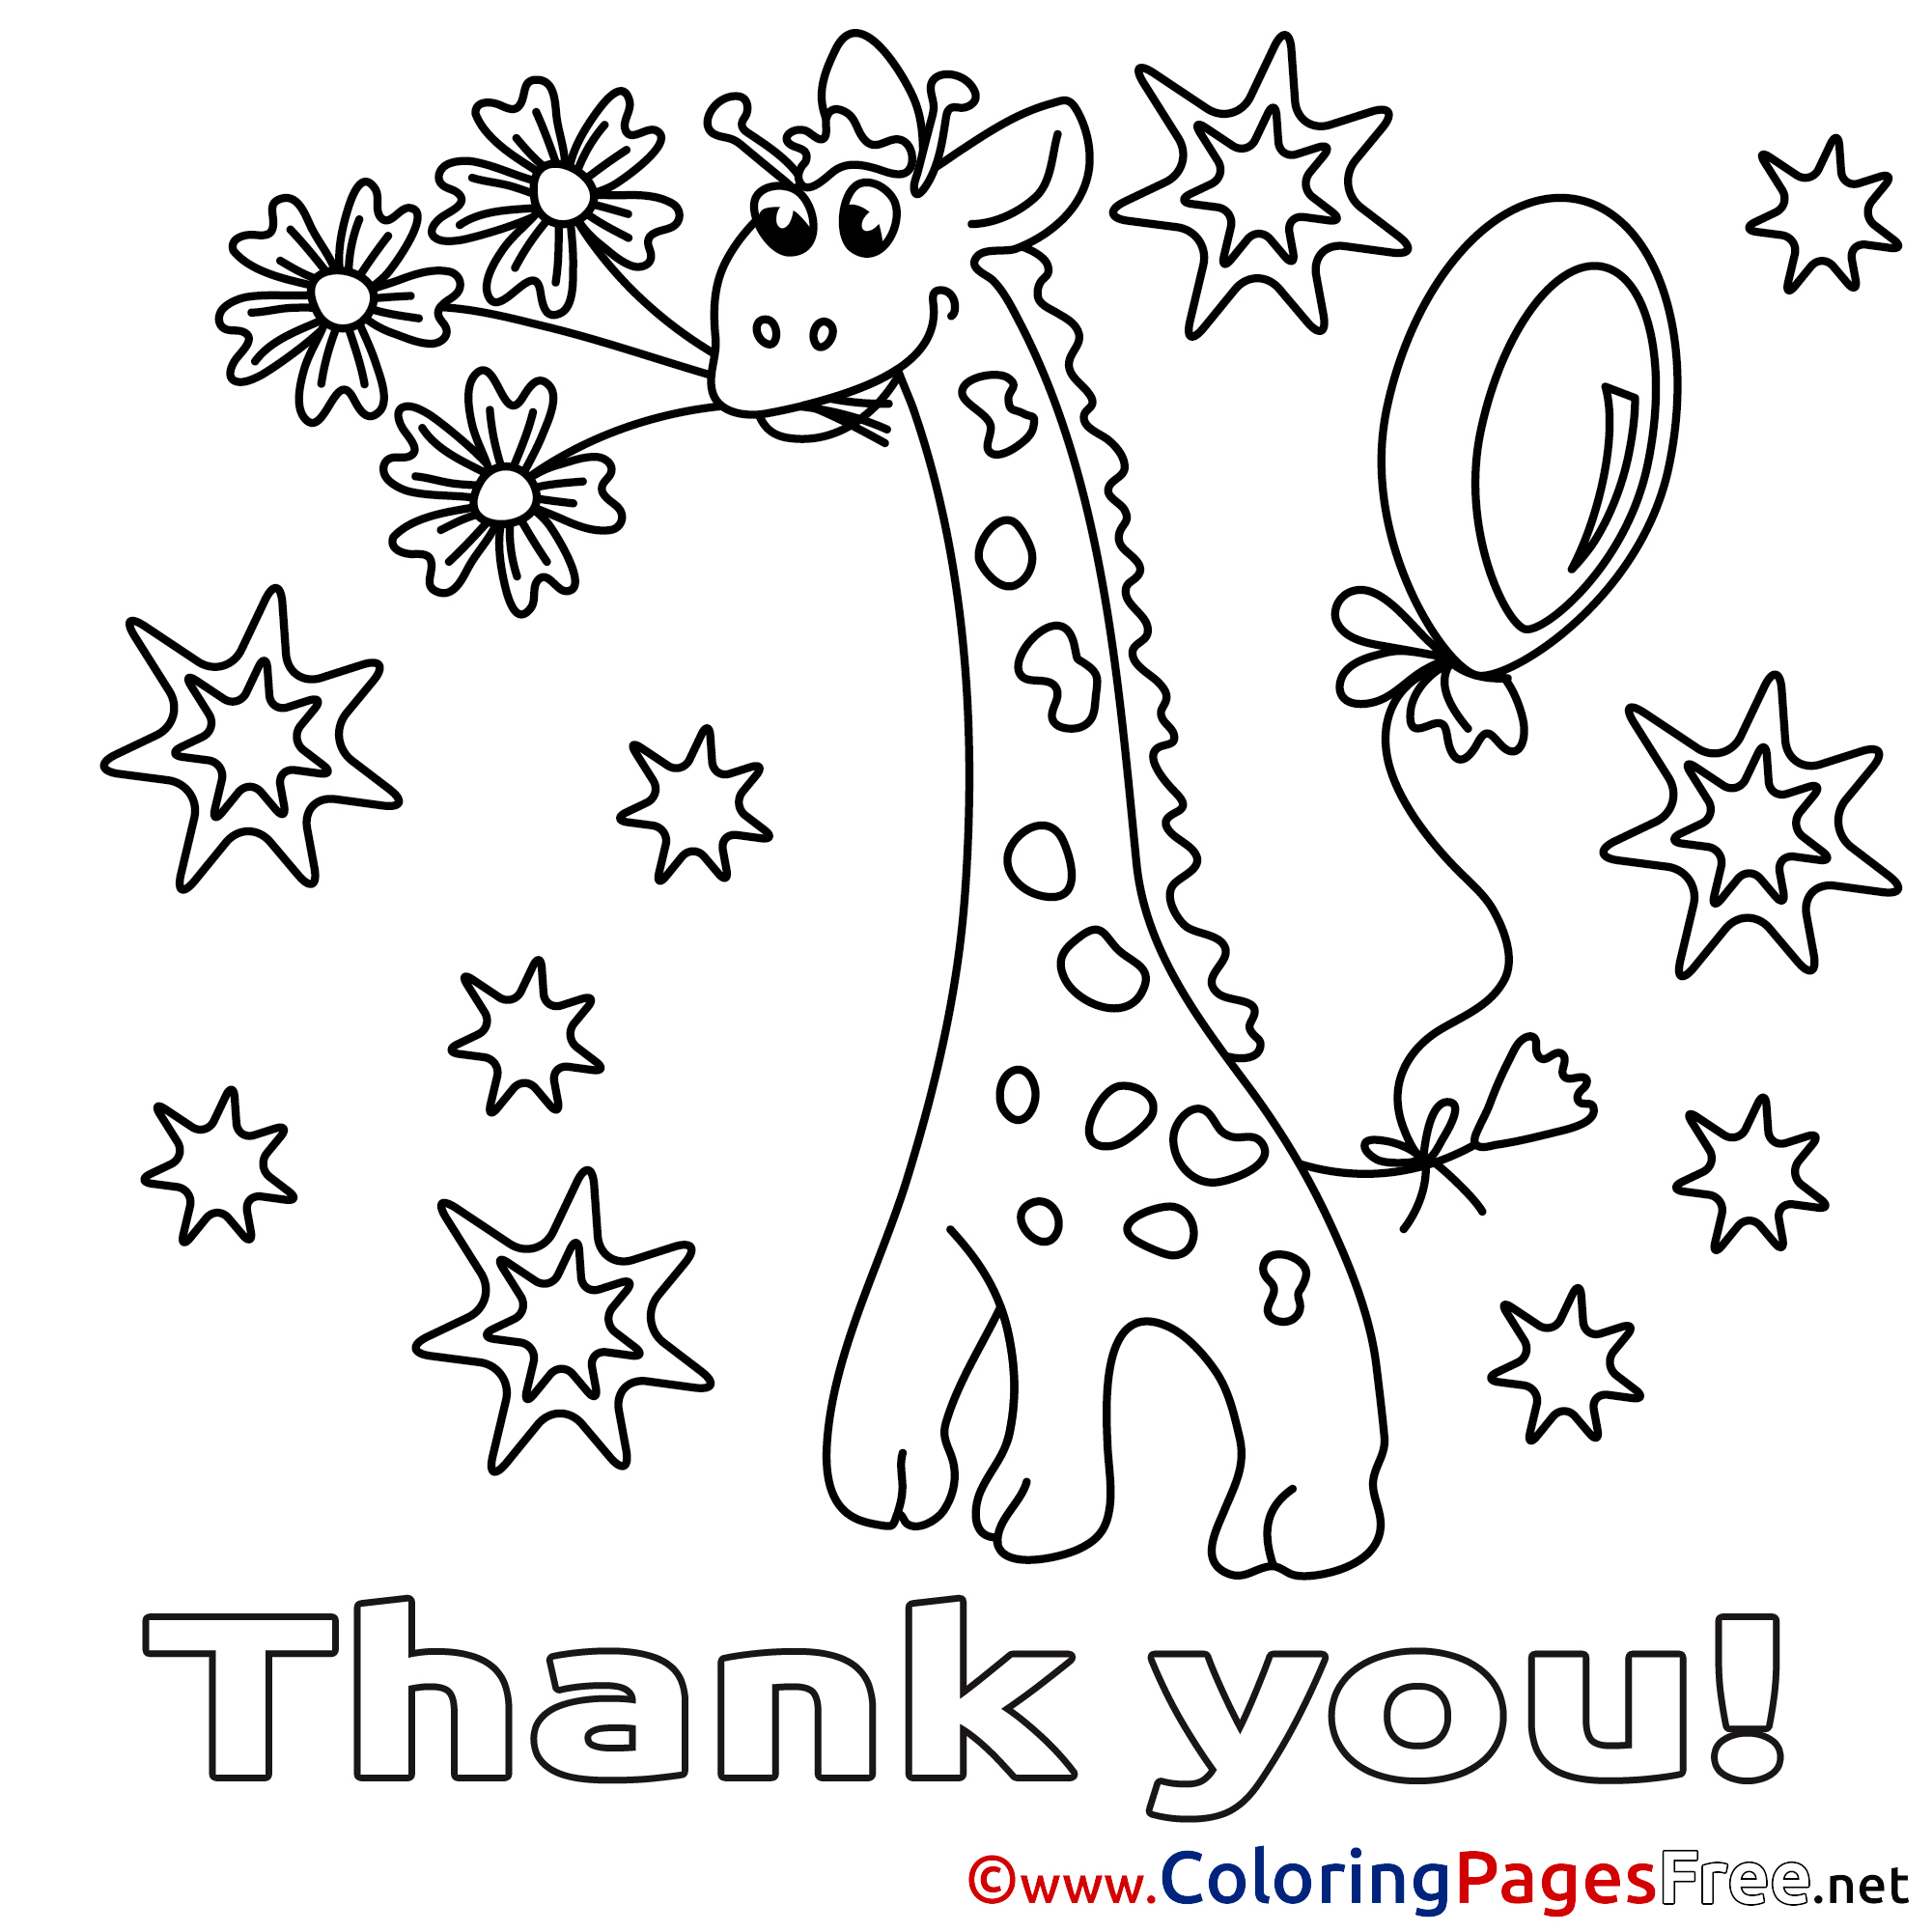 thank you coloring sheets top thank you coloring pages printable cool wallpaper you thank sheets coloring